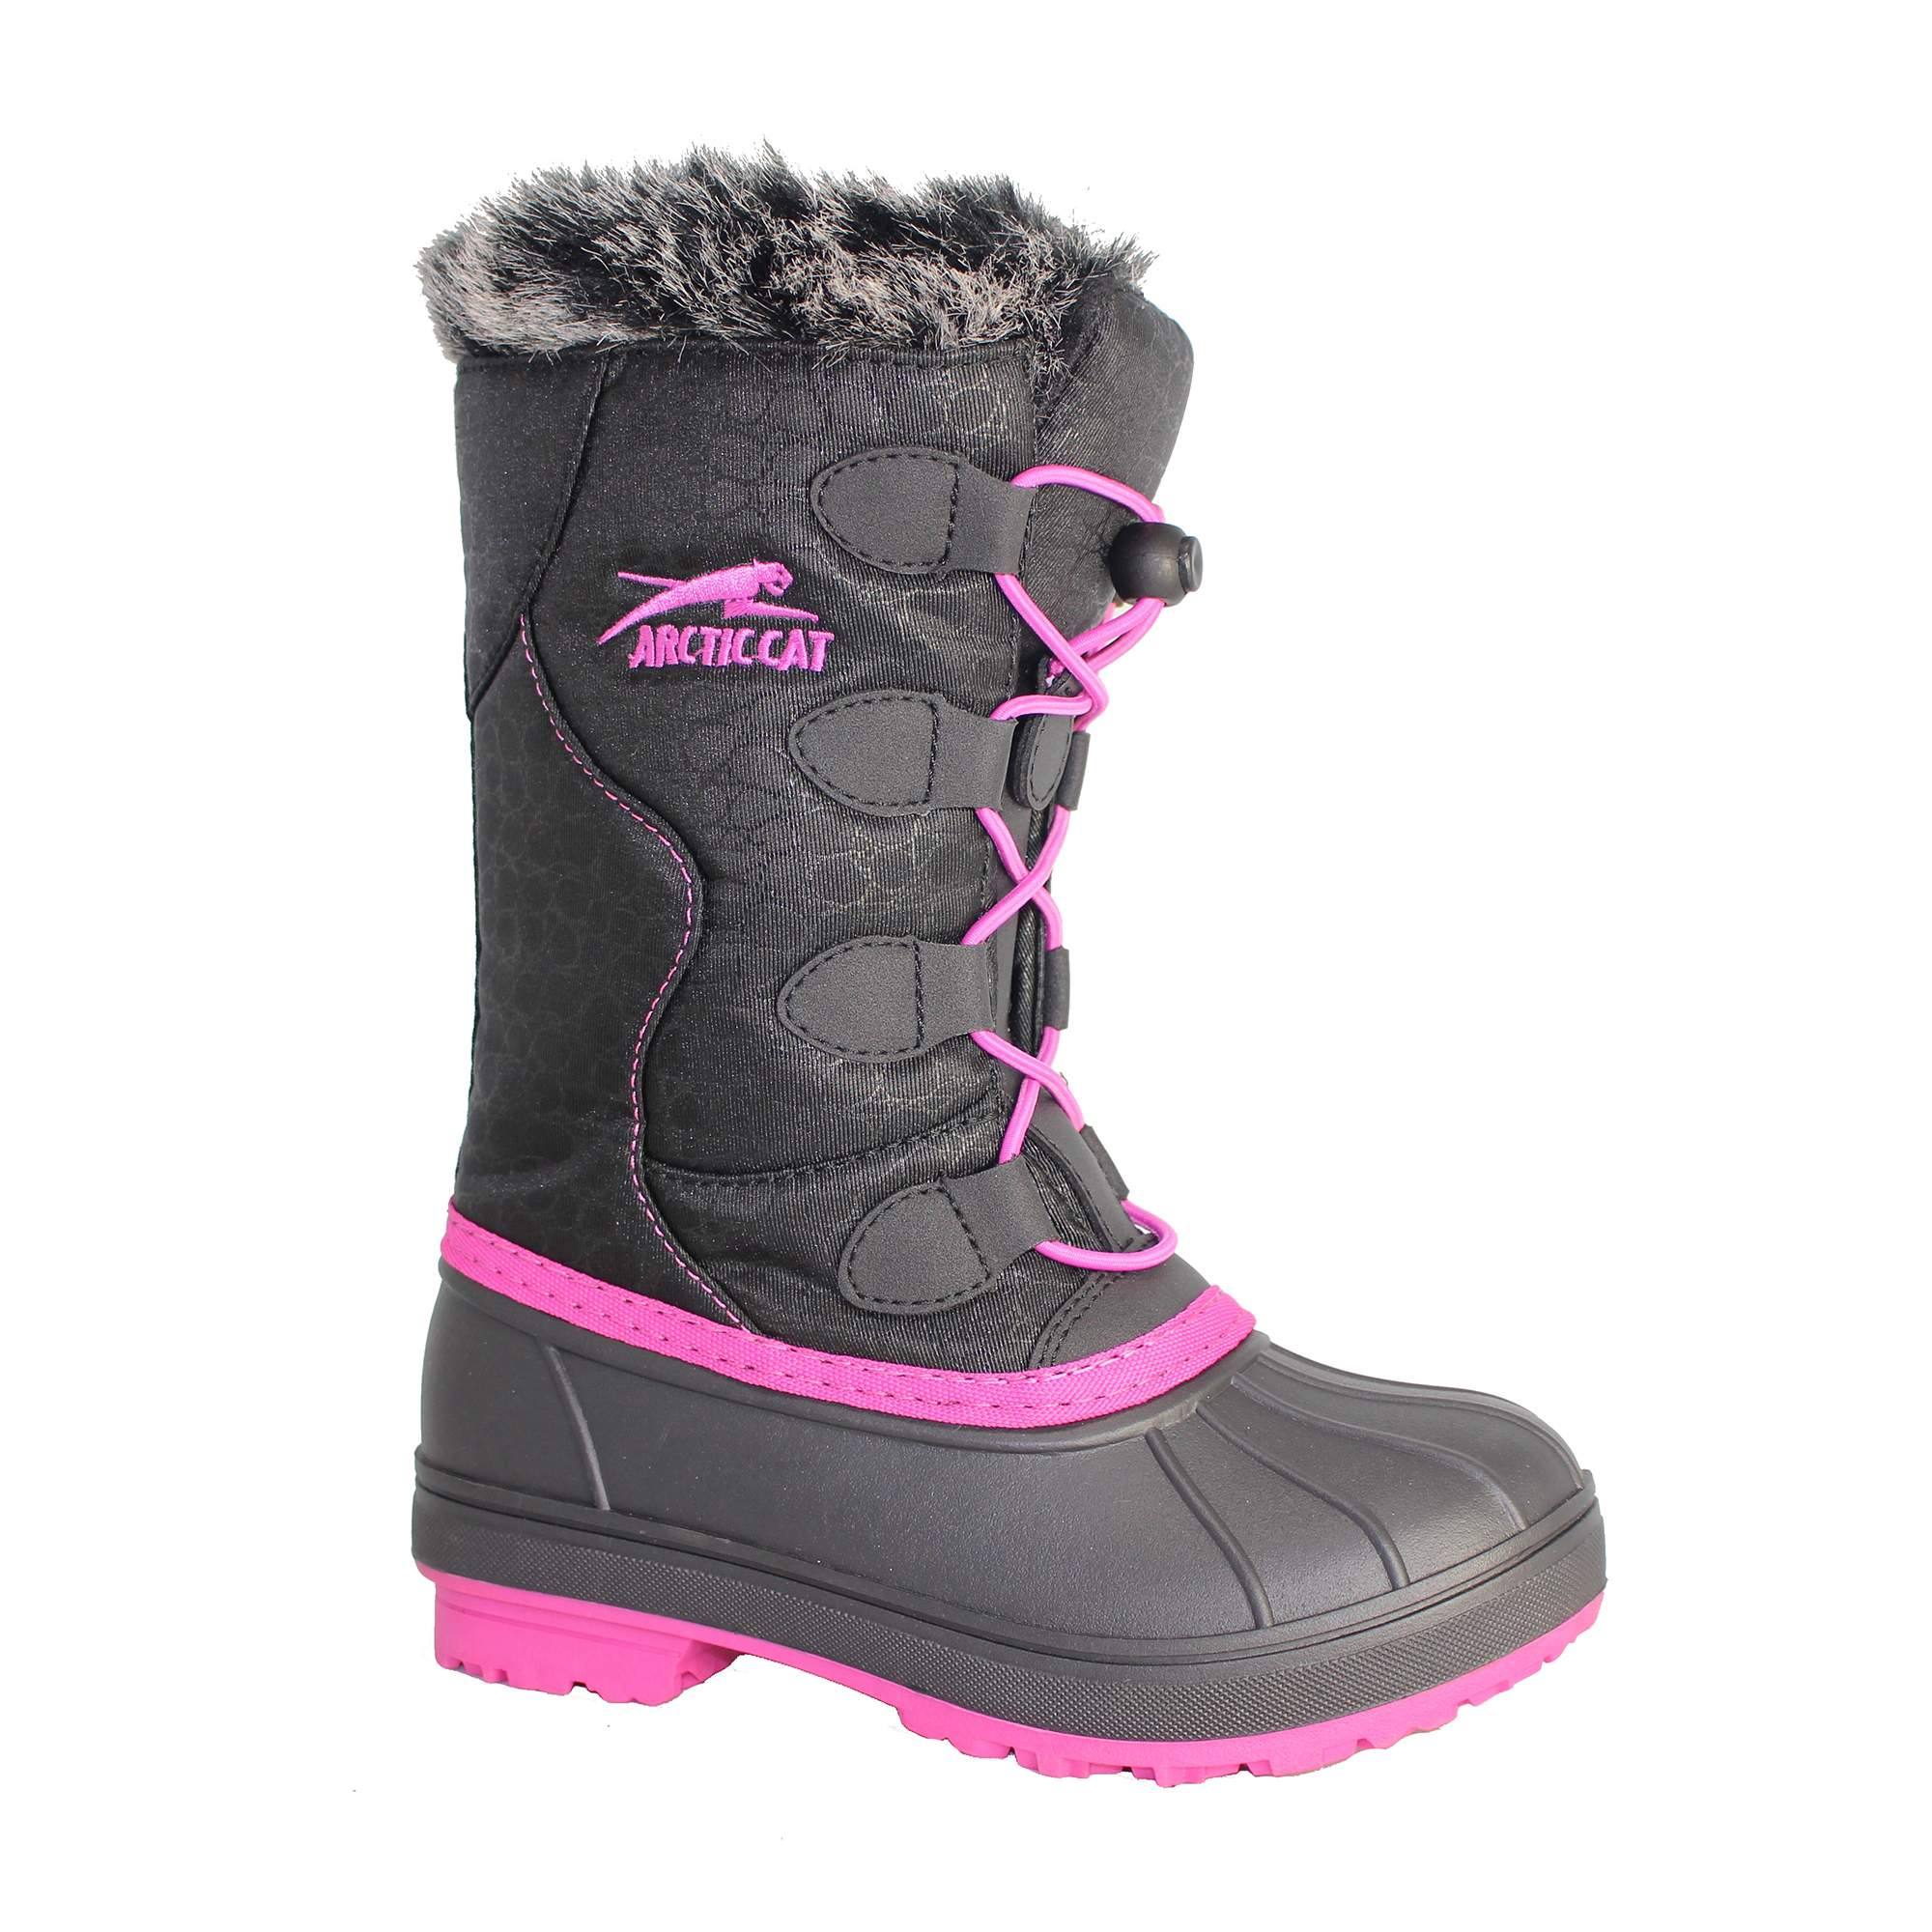 Arctic Cat Girls' Temperature Rated Winter Snow Boot